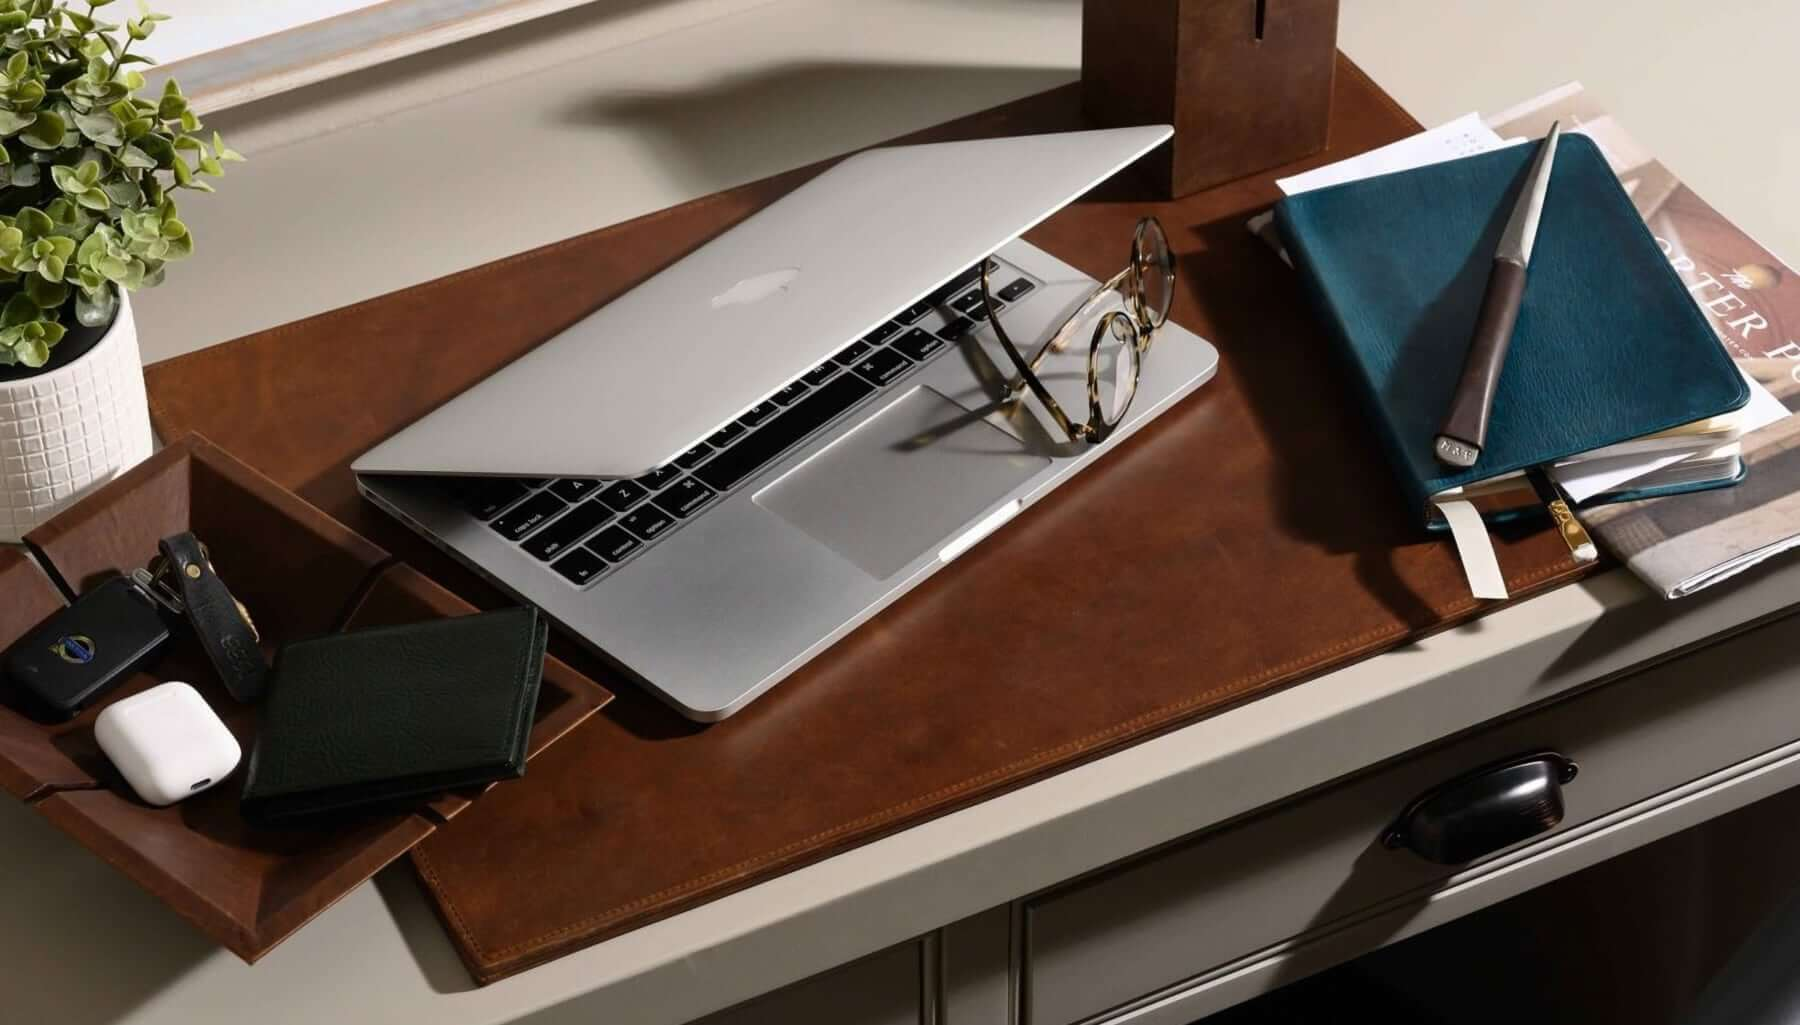 Best desk pads and blotters in 2021